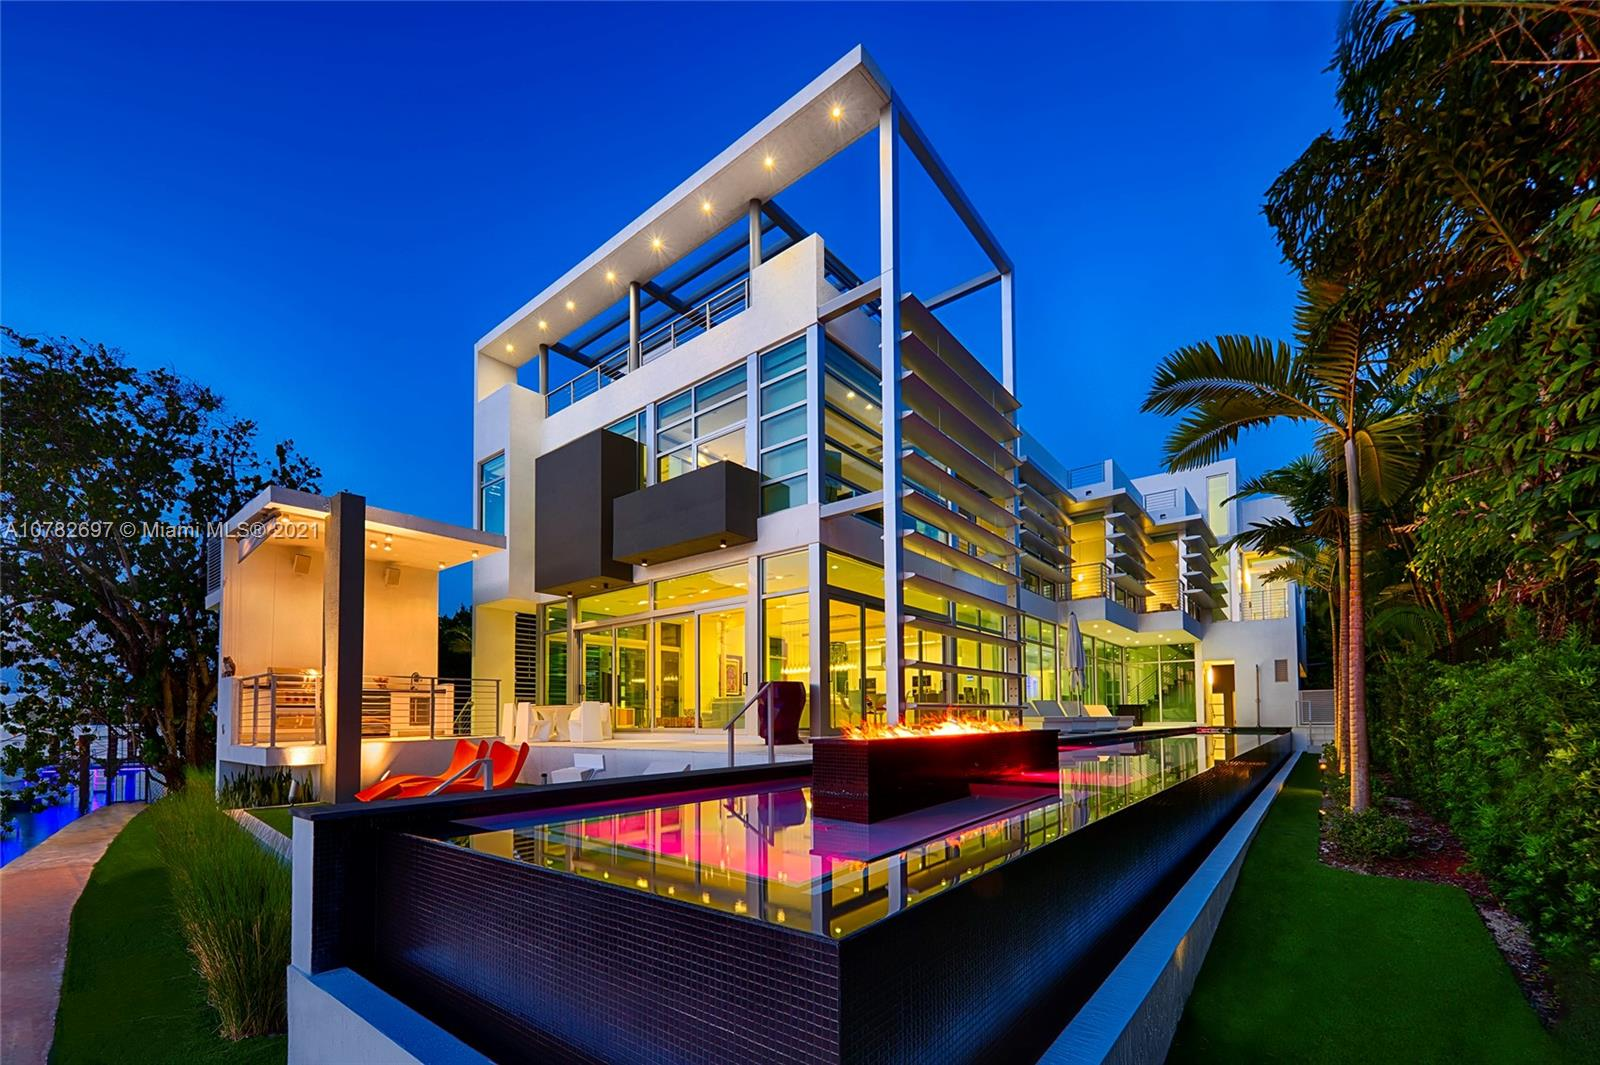 This sleek ultra-modern tri-level waterfront masterpiece sits on the coveted tip of guard gated Hibiscus Island. Impeccably designed with no expenses spared the residence features exquisite porcelain & oak wood floors, masterfully designed open living, dining & family areas all feature breathtaking unobstructed views to Biscayne Bay & the downtown Miami skyline. The home sports a gourmet kitchen w/top-of-line appliances, spacious state-of-the-art movie theater, fully equipped bayside gym, & second story principal suite that overlooks Biscayne Bay. Outdoor features include an infinity edge lap pool, Jacuzzi w/fire pit feature, expansive rooftop lounge w/360 degree views to bay & city, dock/boat lift. +/-85 ft of water frontage. As per owner, property has 6,607 SF of living area.